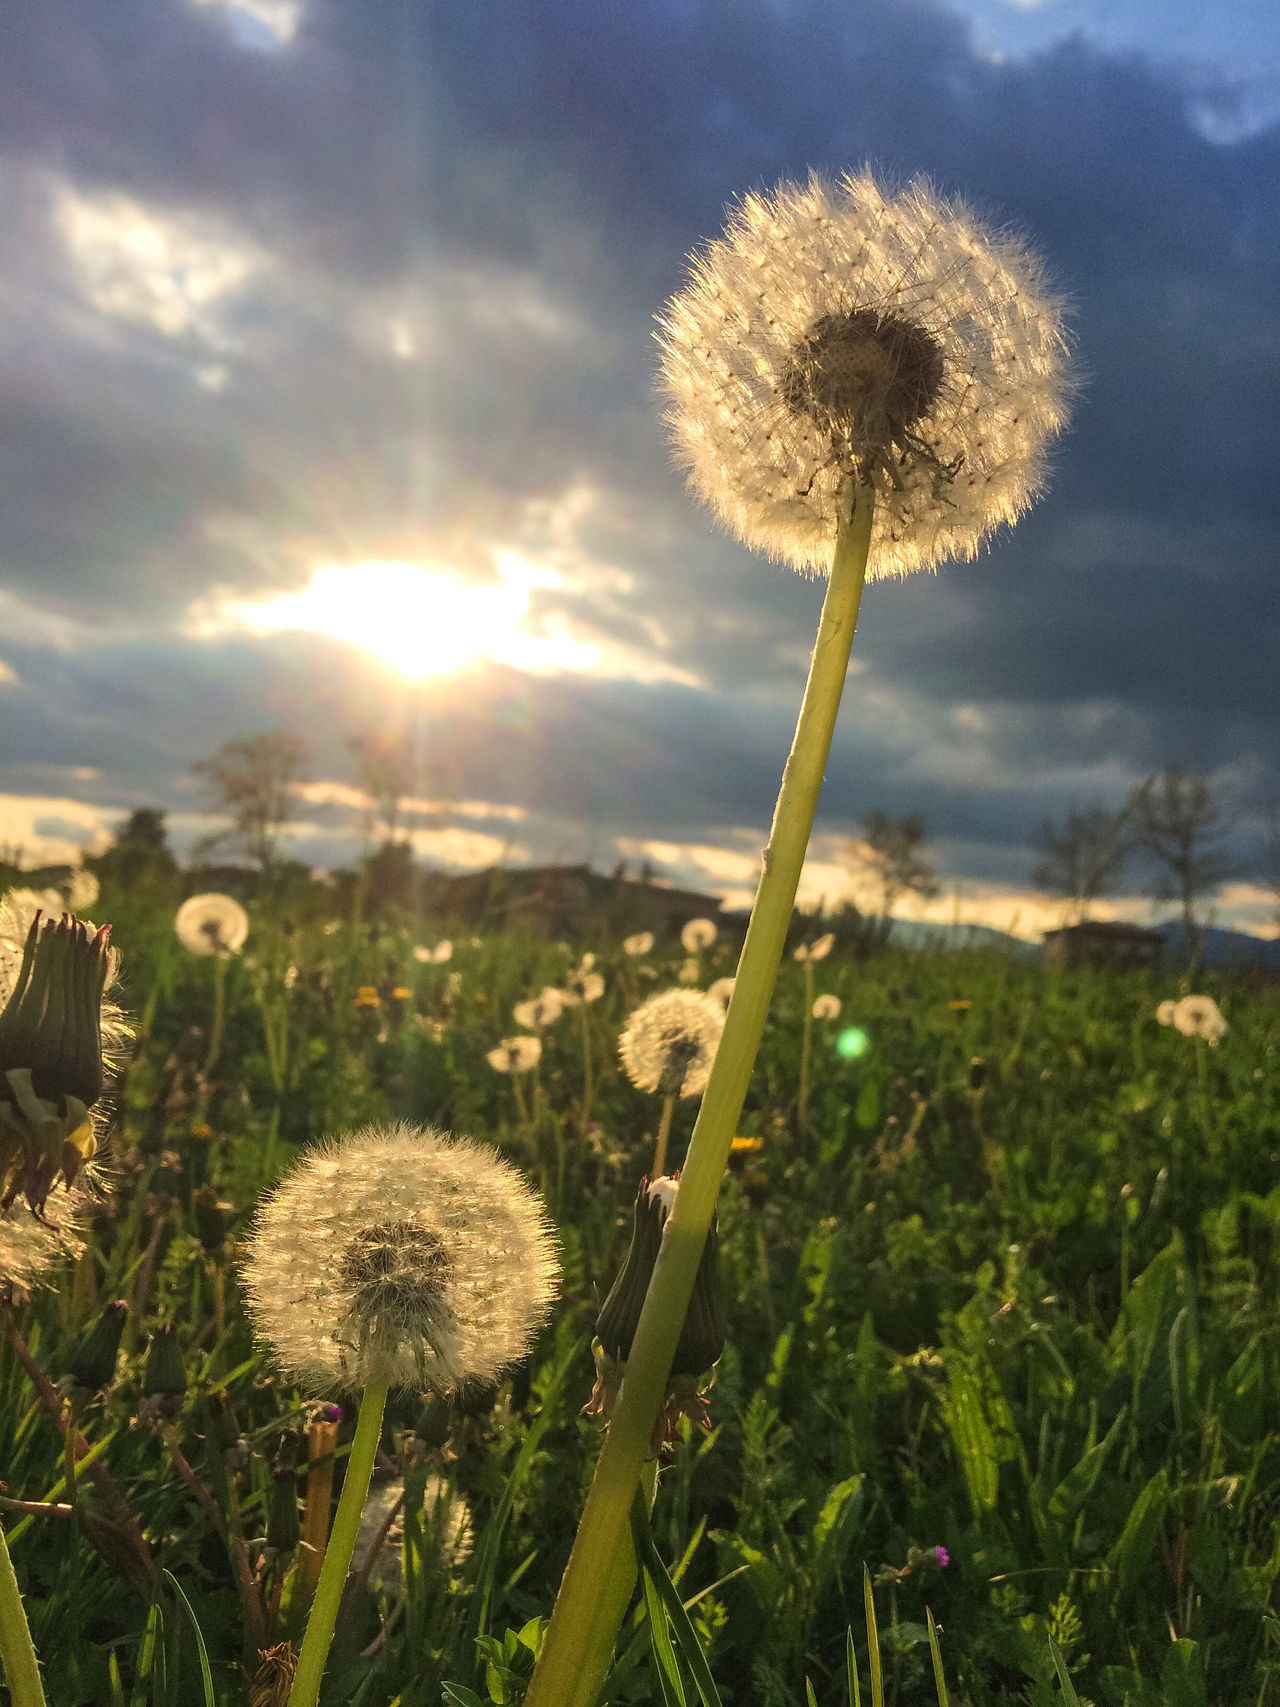 Dandelion flower on sunset Beauty In Nature Blooming Close-up Dandelion Field Flower Flower Head Fragility Freshness Growth In Bloom Nature Plant Sky Softness Sunlight Uncultivated Wildflower